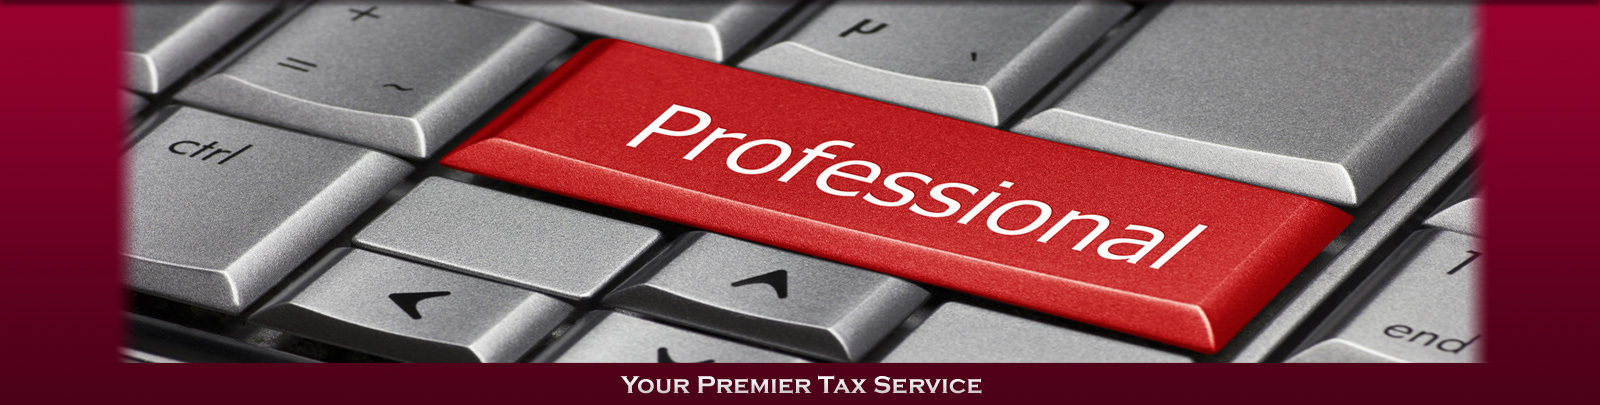 Focus 9 Enterprises A Professional Tax And Accounting Firm In